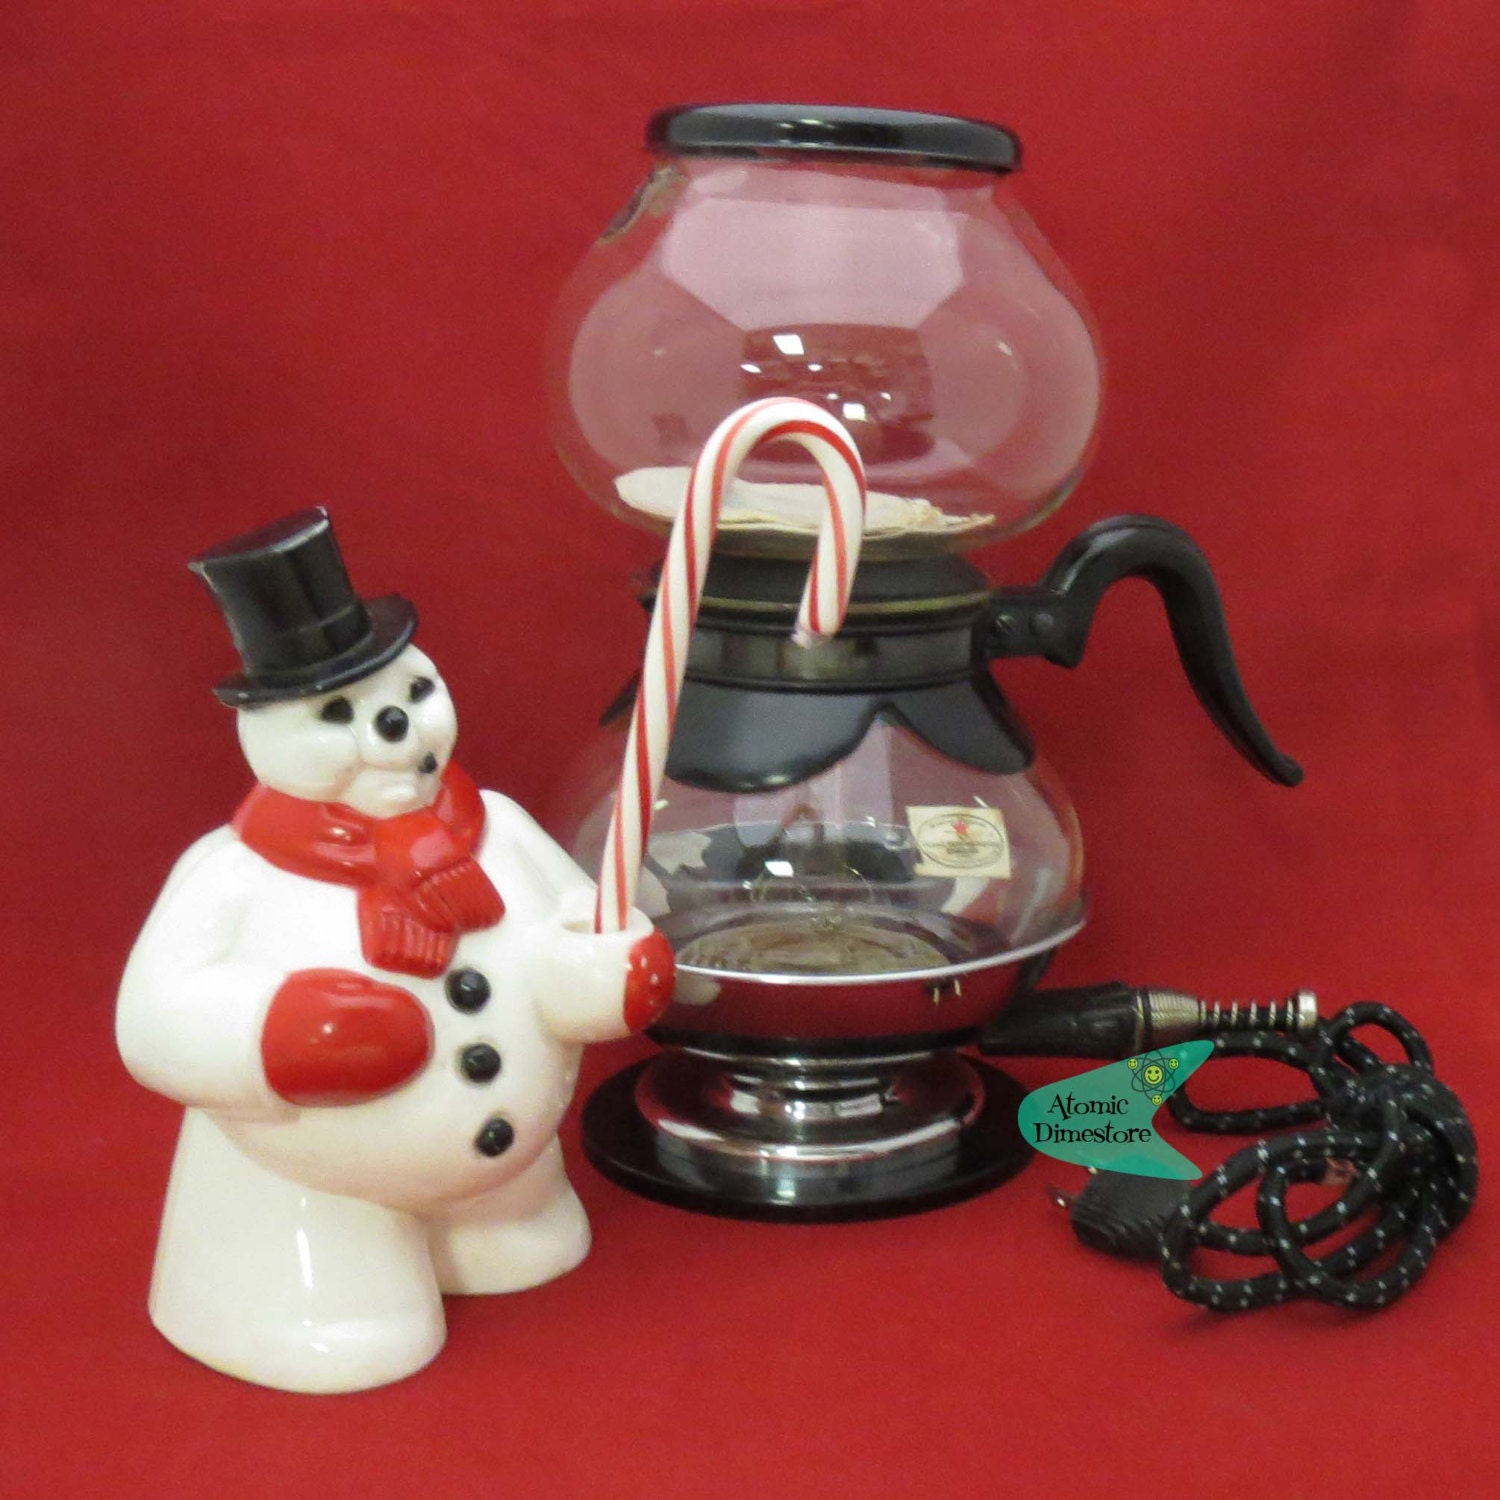 Vintage 1940s Silex vacuum coffee maker with Pyrex glass NOS